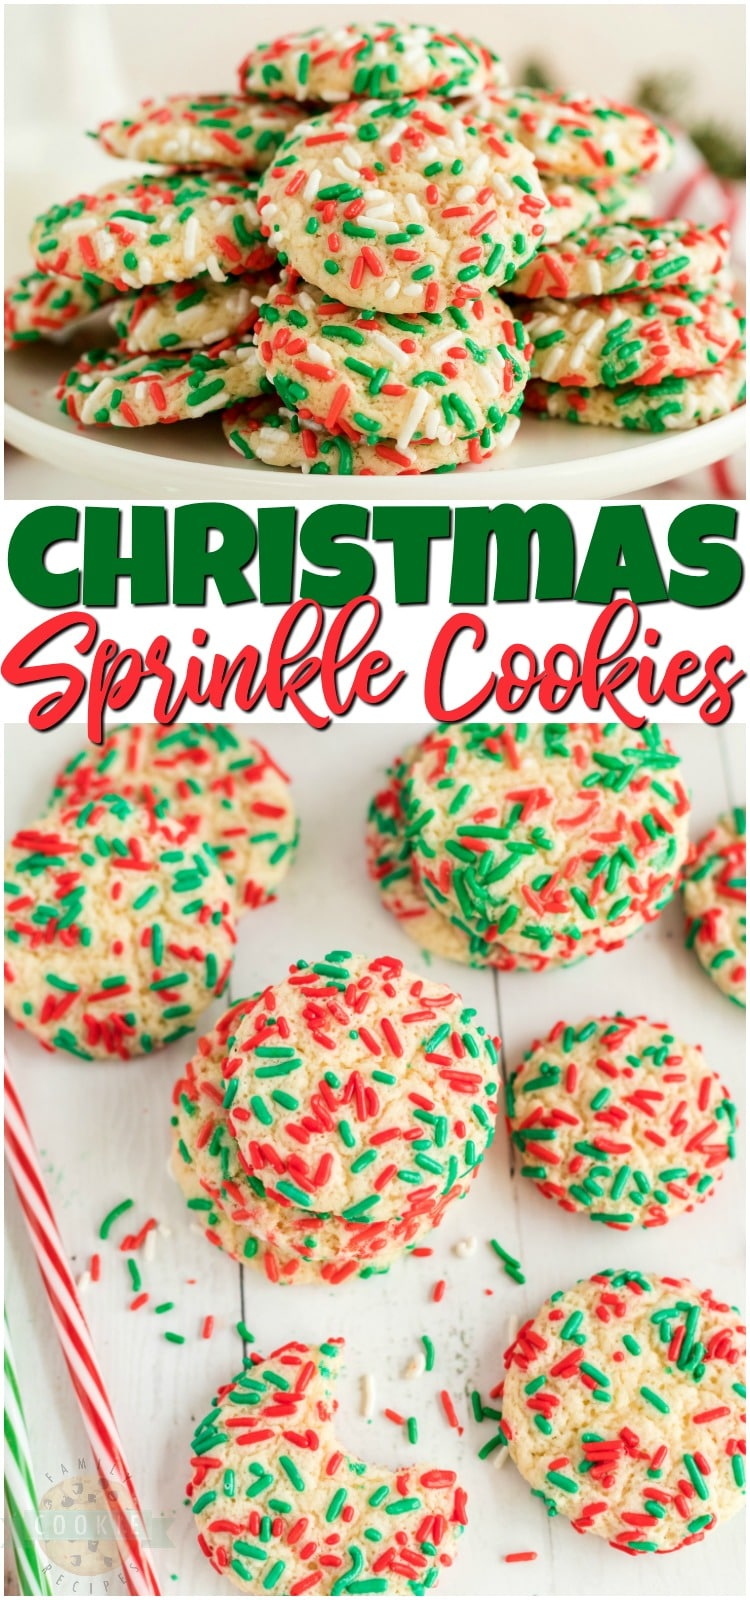 Christmas Sprinkle Cookies are sugar Cookies rolled in Christmas sprinkles for a special holiday treat!Delightfully soft & chewy Christmas cookies made with festive holiday sprinkles! #Christmas #sugarcookies #sprinkles #cookies #baking #holidays #neighborgifts #ChristmasCookies from FAMILY COOKIE RECIPES